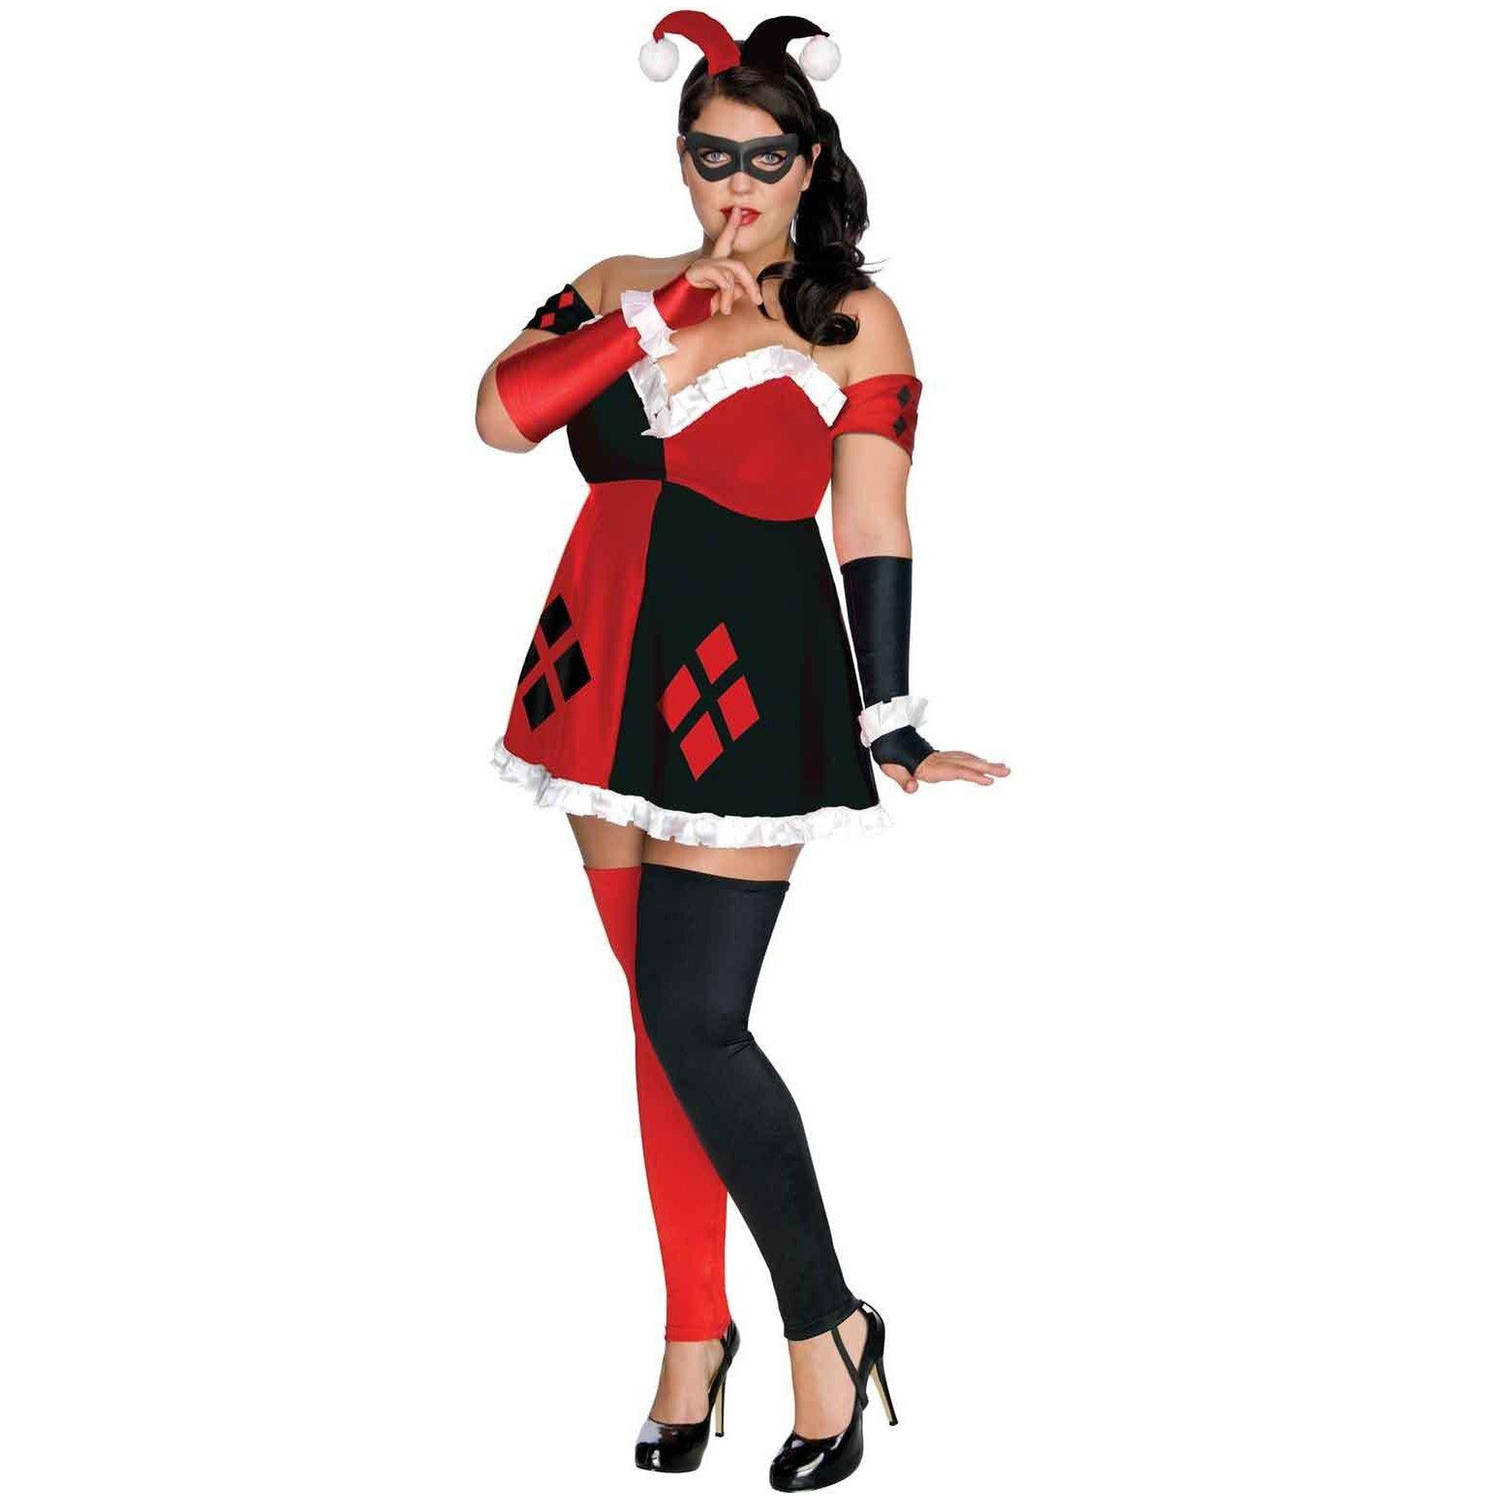 DC Comics Super Villains Harley Quinn Women's Plus Size Adult Halloween Costume, Women's Plus